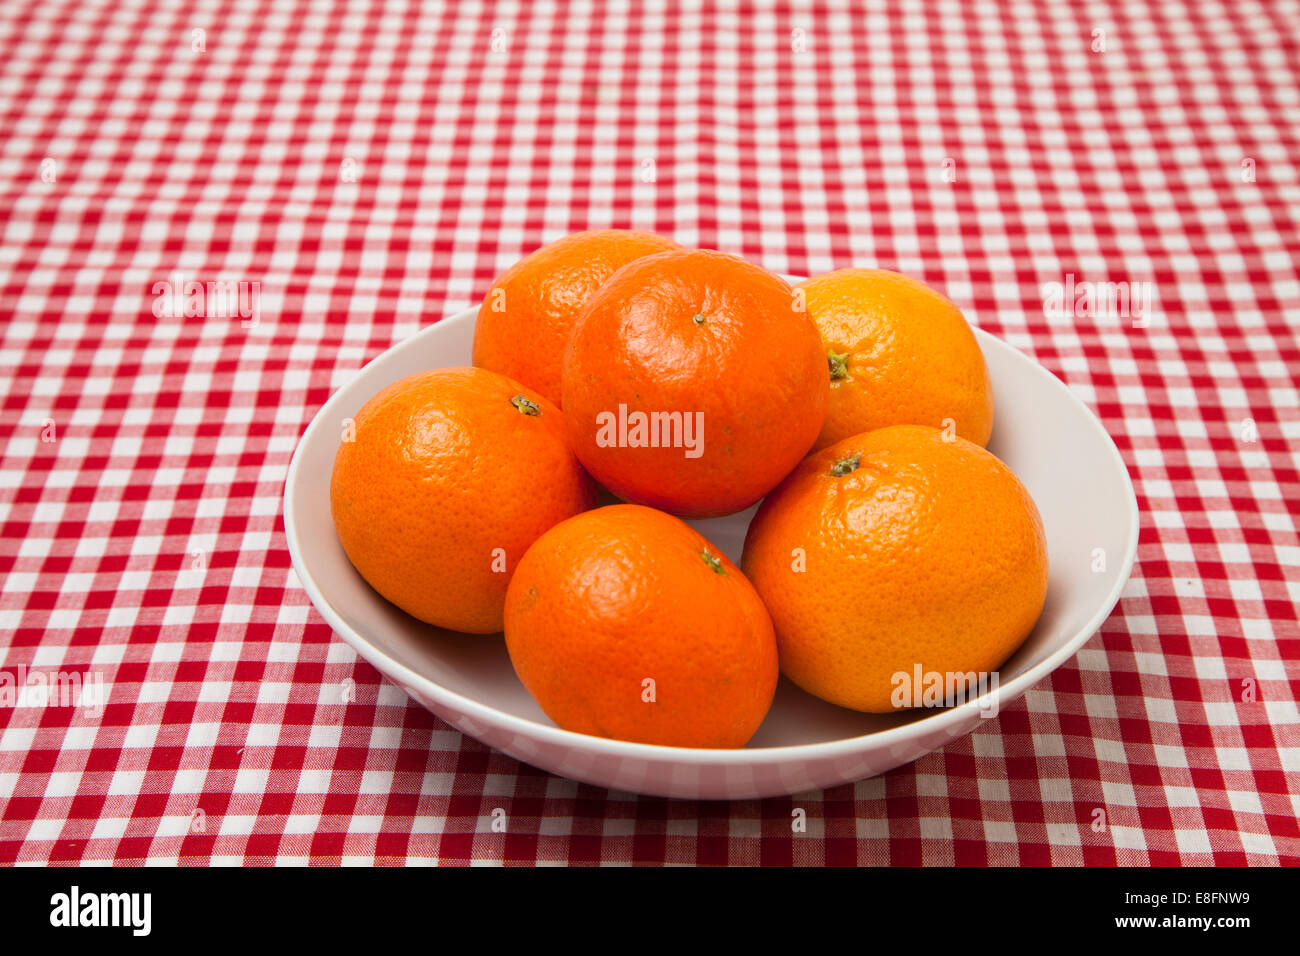 Bowl of oranges on checked tablecloth - Stock Image